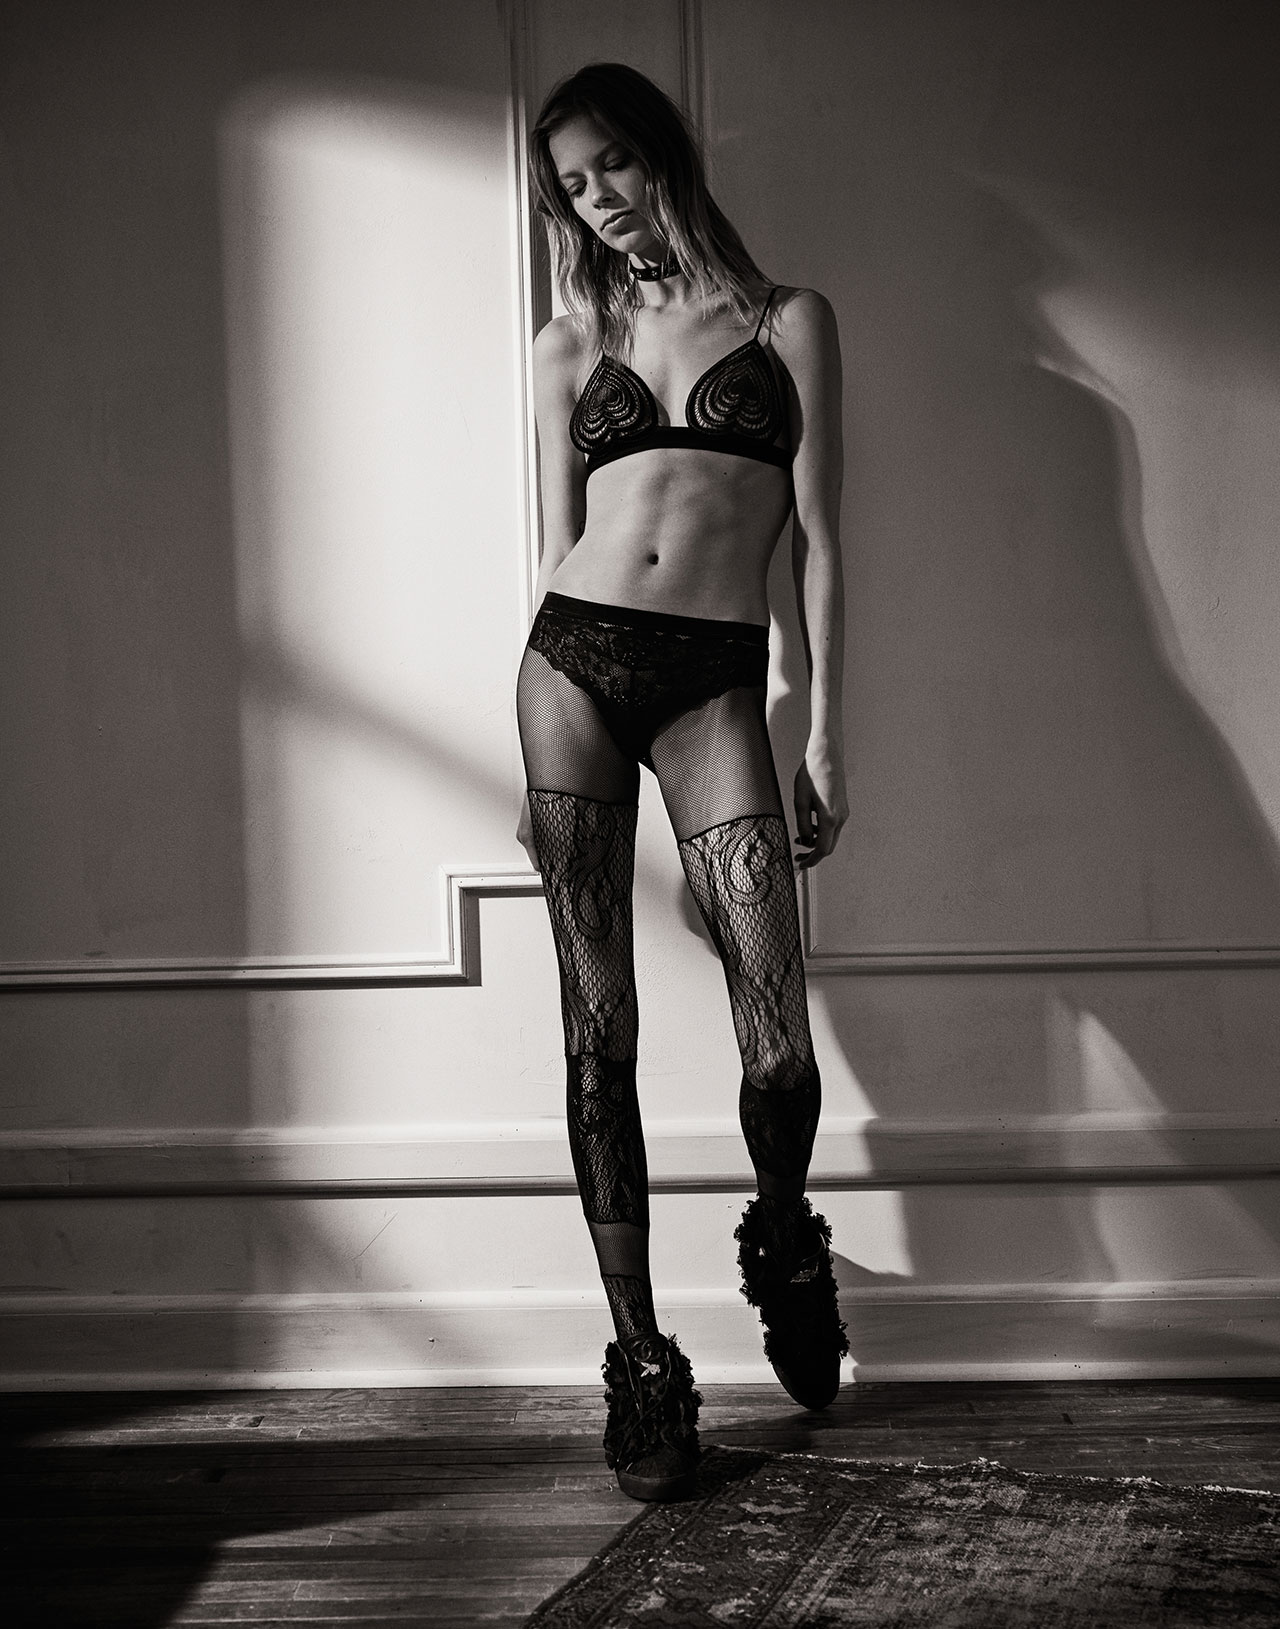 Watch Lexi boling naked 7 Photos video